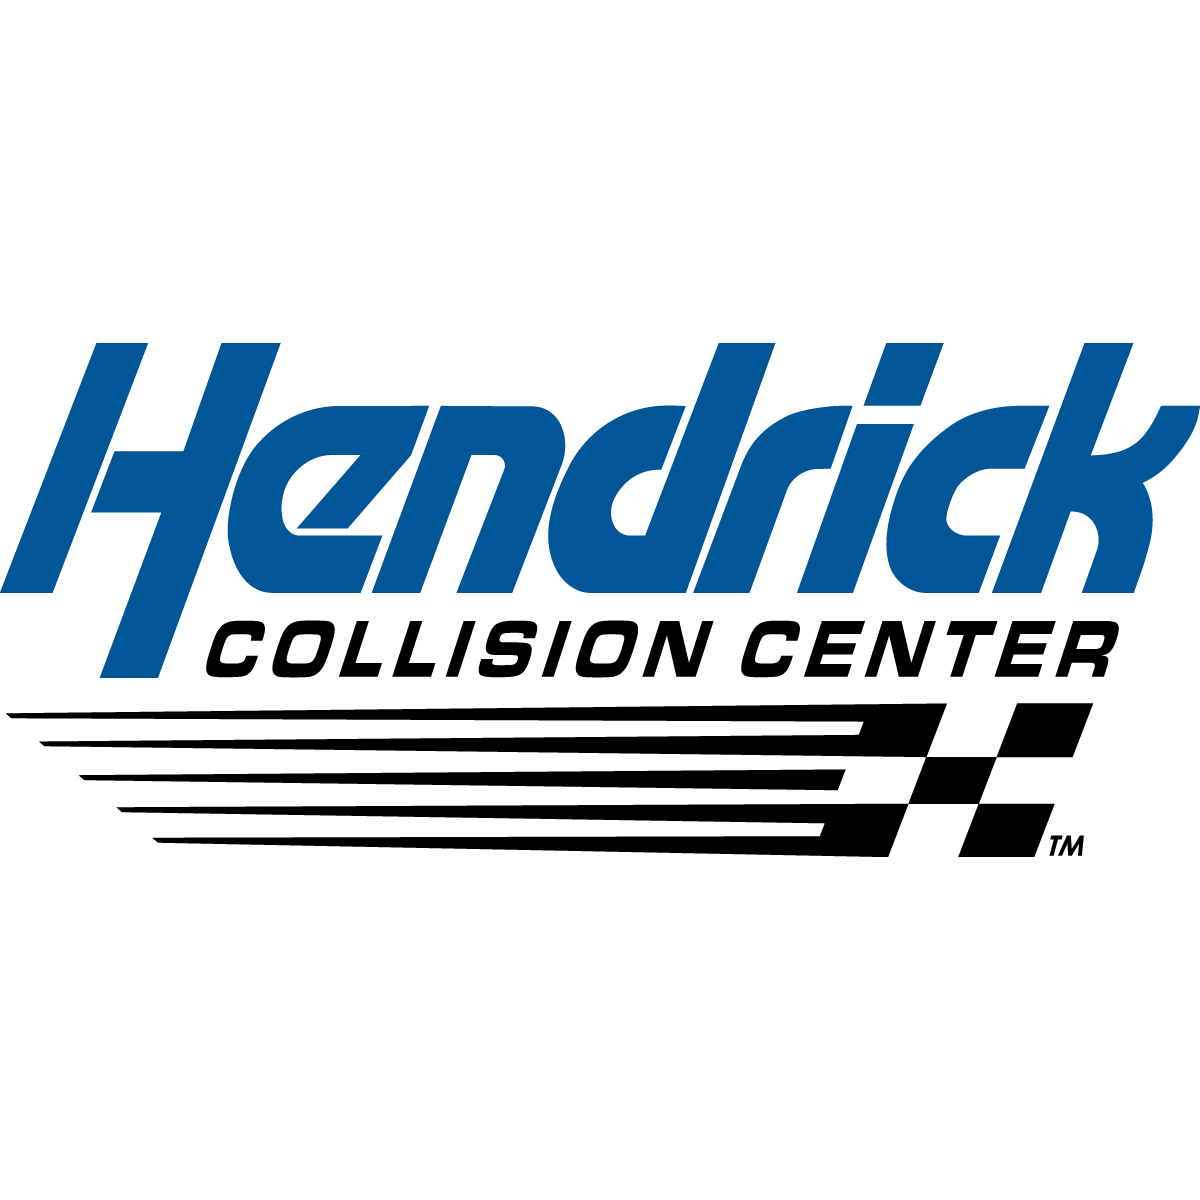 Hendrick Collision Center of Kansas City - Kansas City, MO - Auto Body Repair & Painting